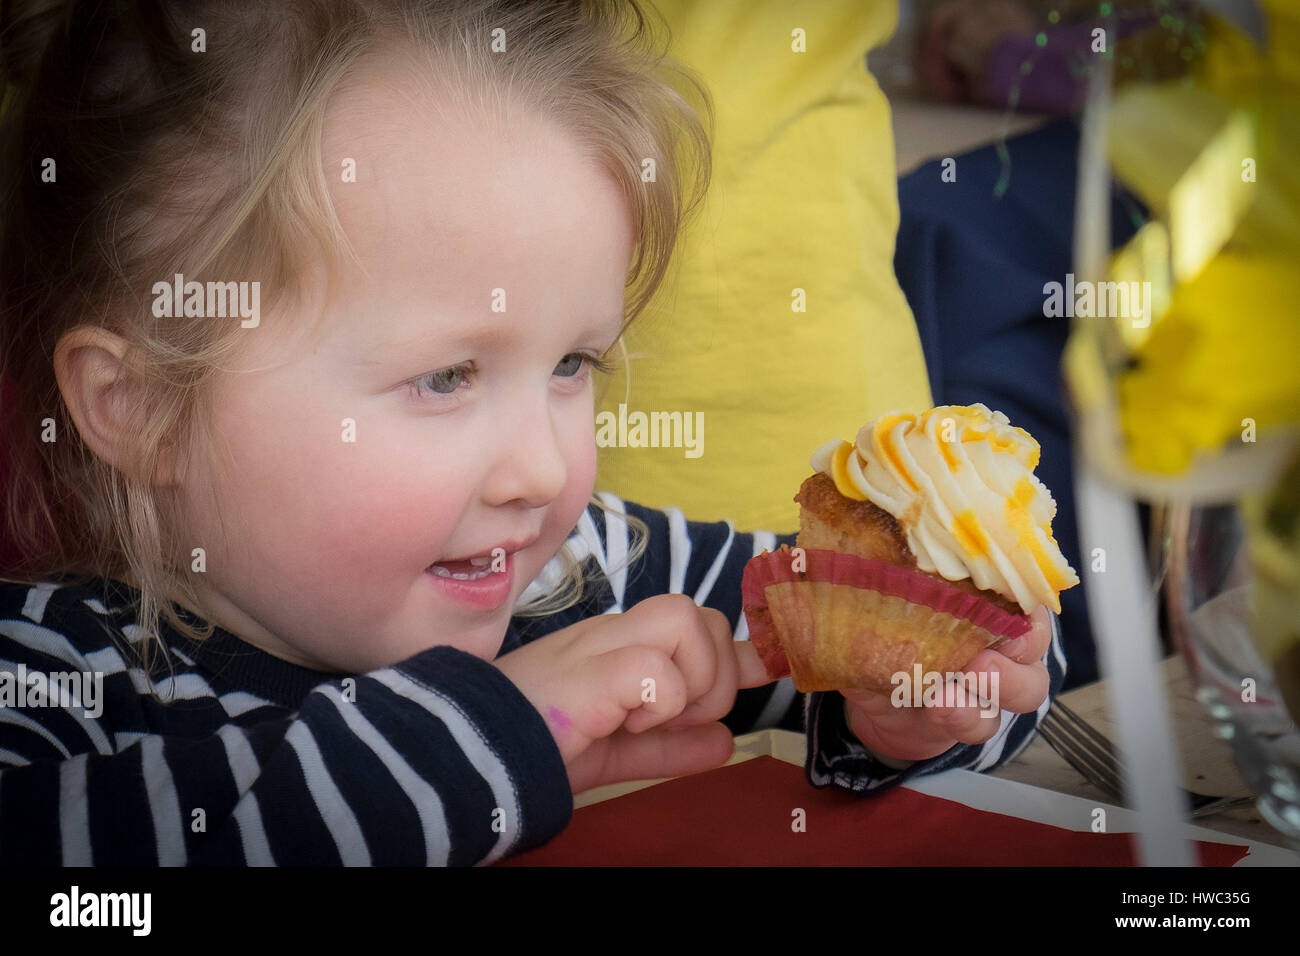 Pretty Blond Child Girl Young Enjoying Anticipating Cake Cupcake - Stock Image